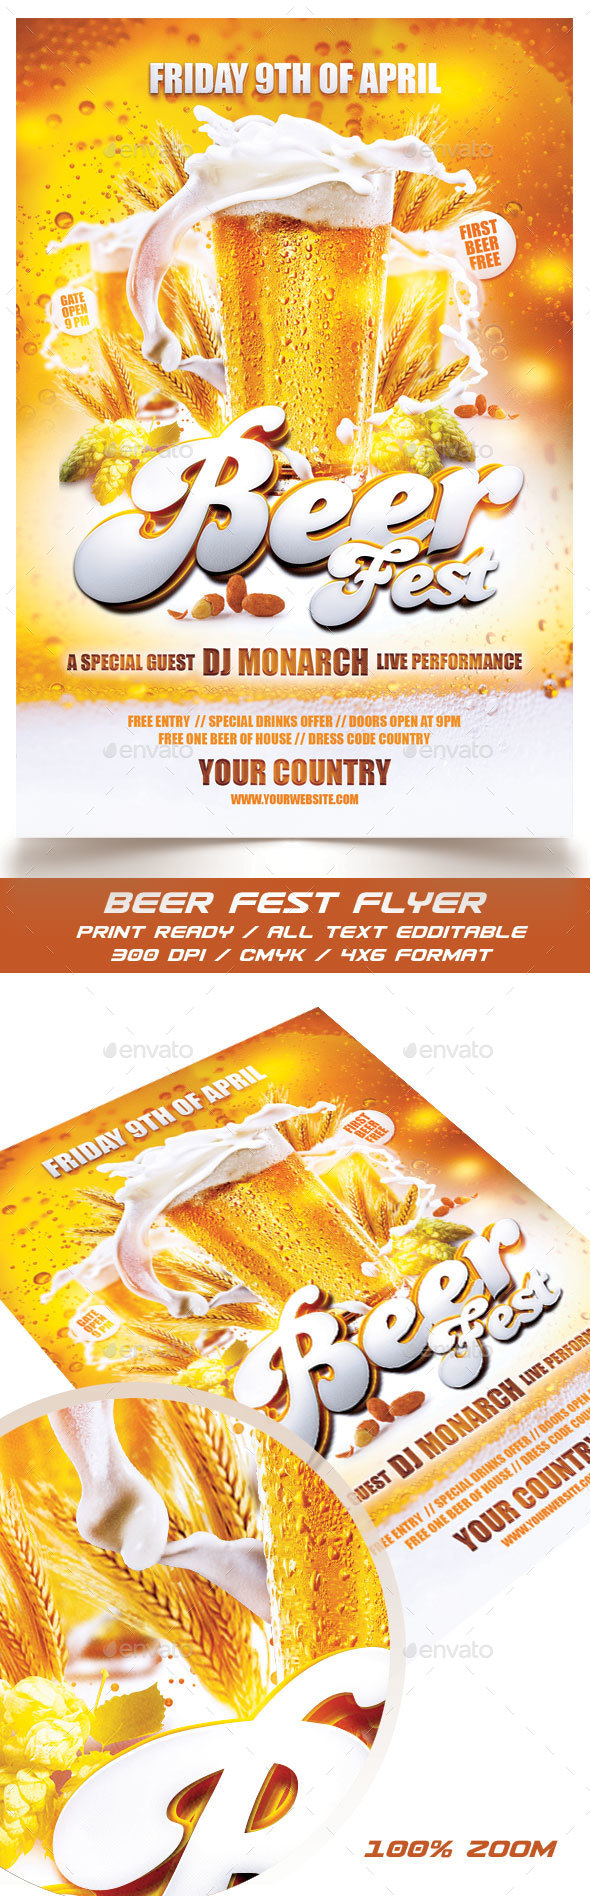 Beer Fest Flyer - Events Flyers